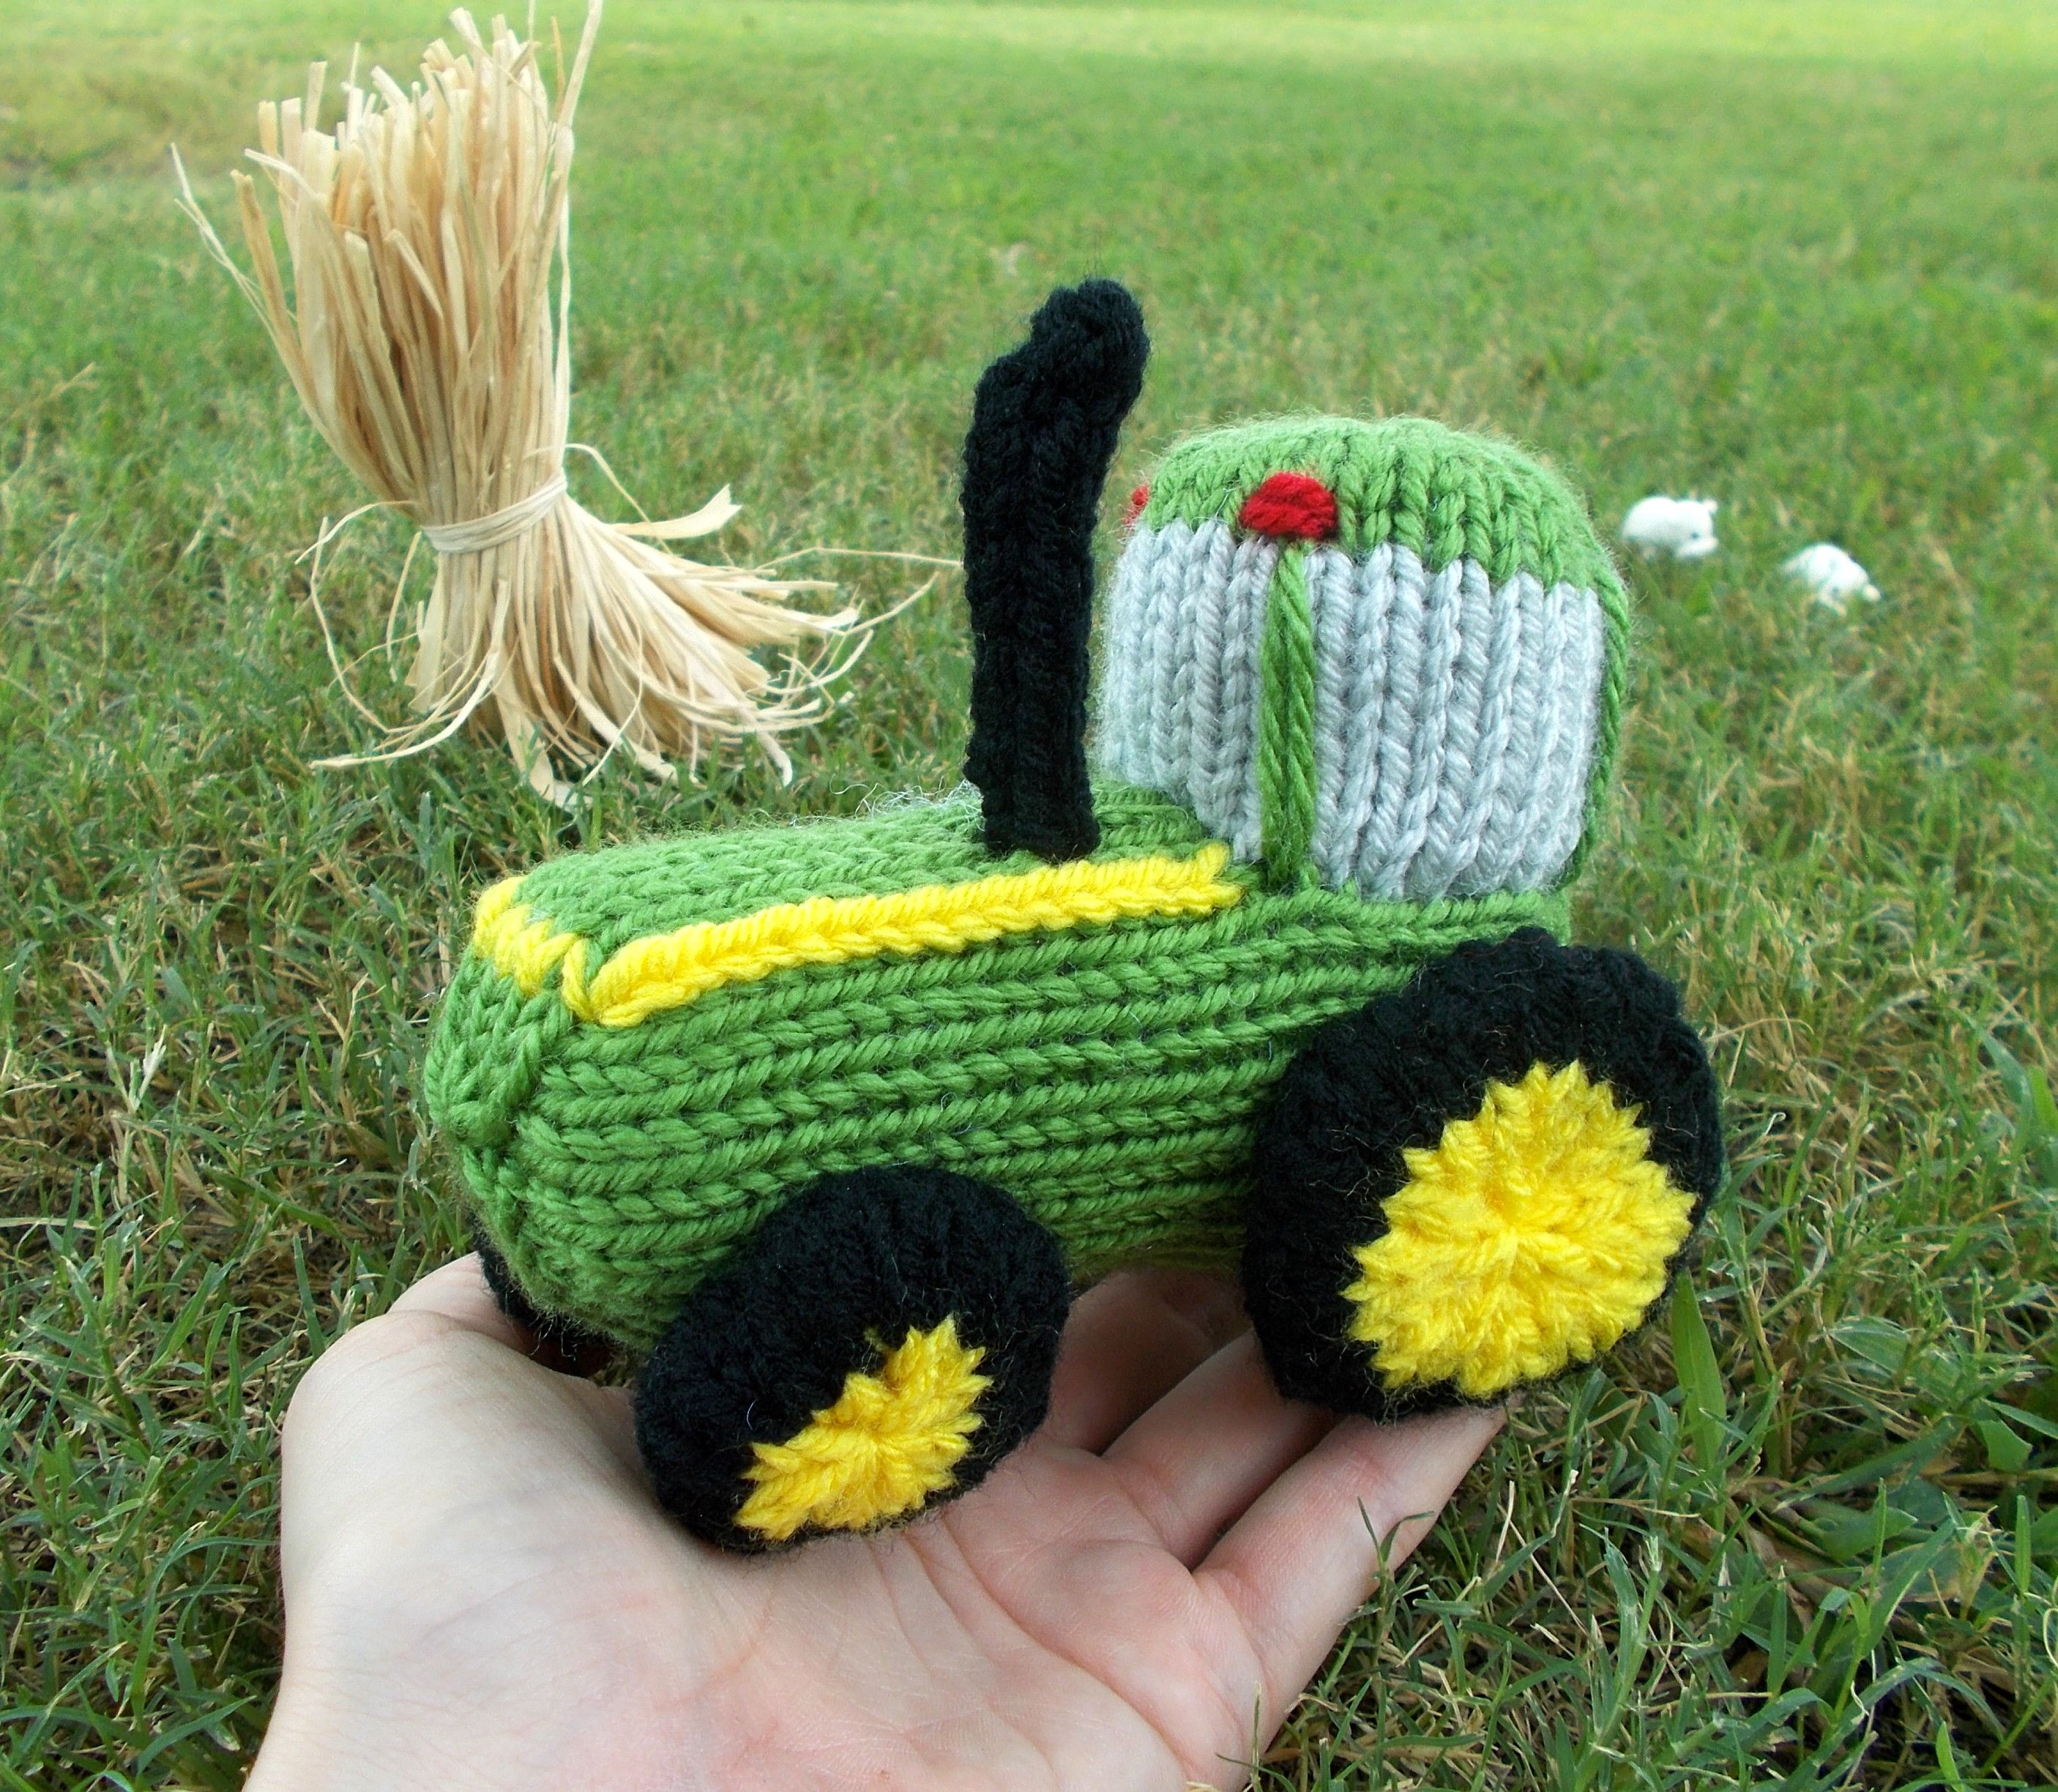 Knitting from grass. Features and models 45